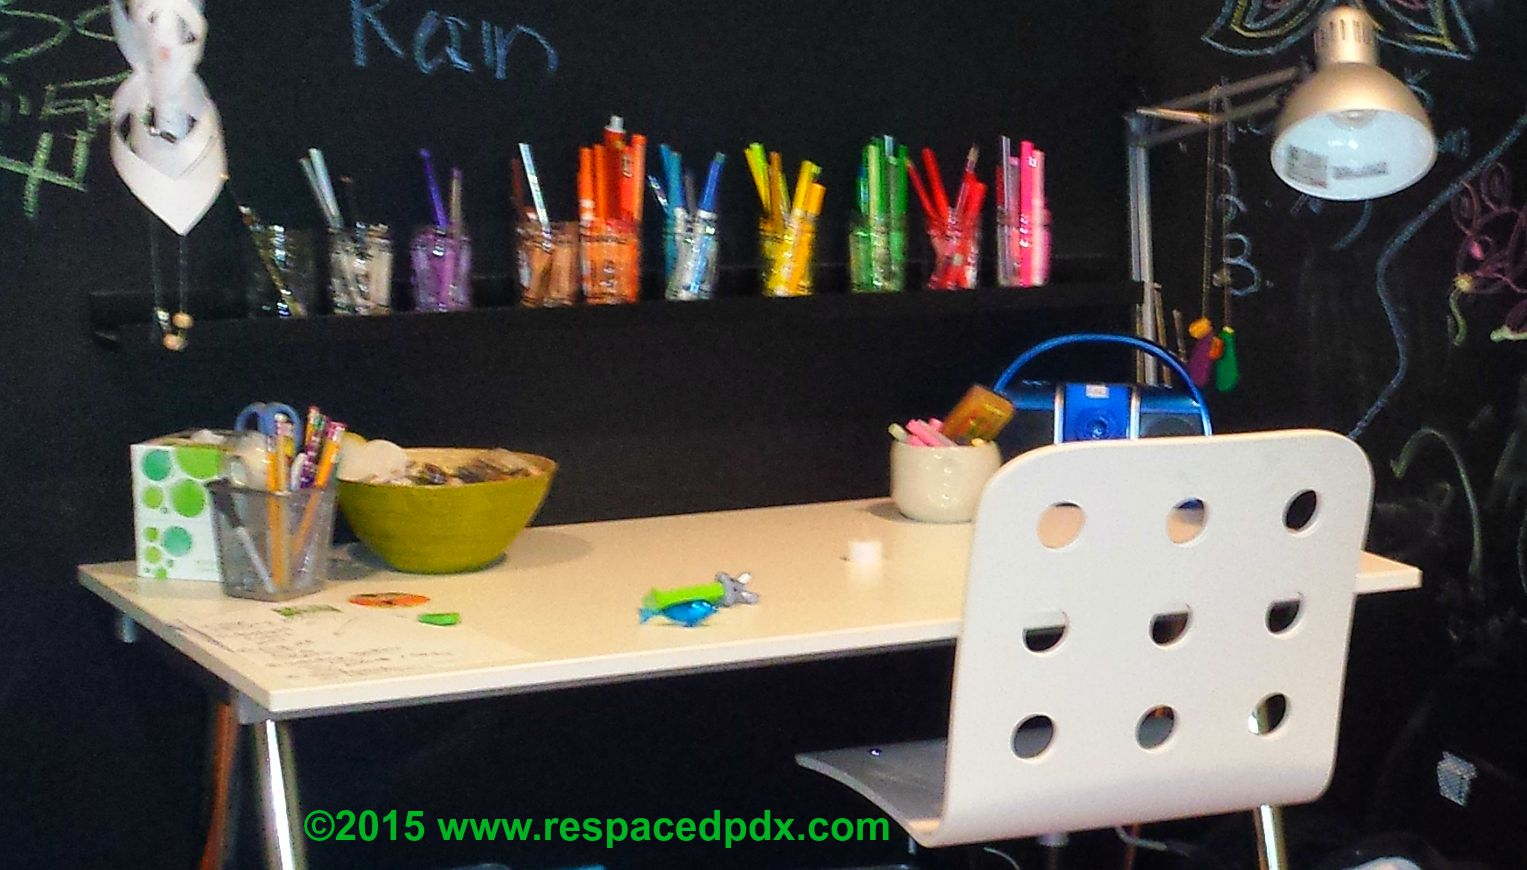 How To Organize Kids School Supplies At Home